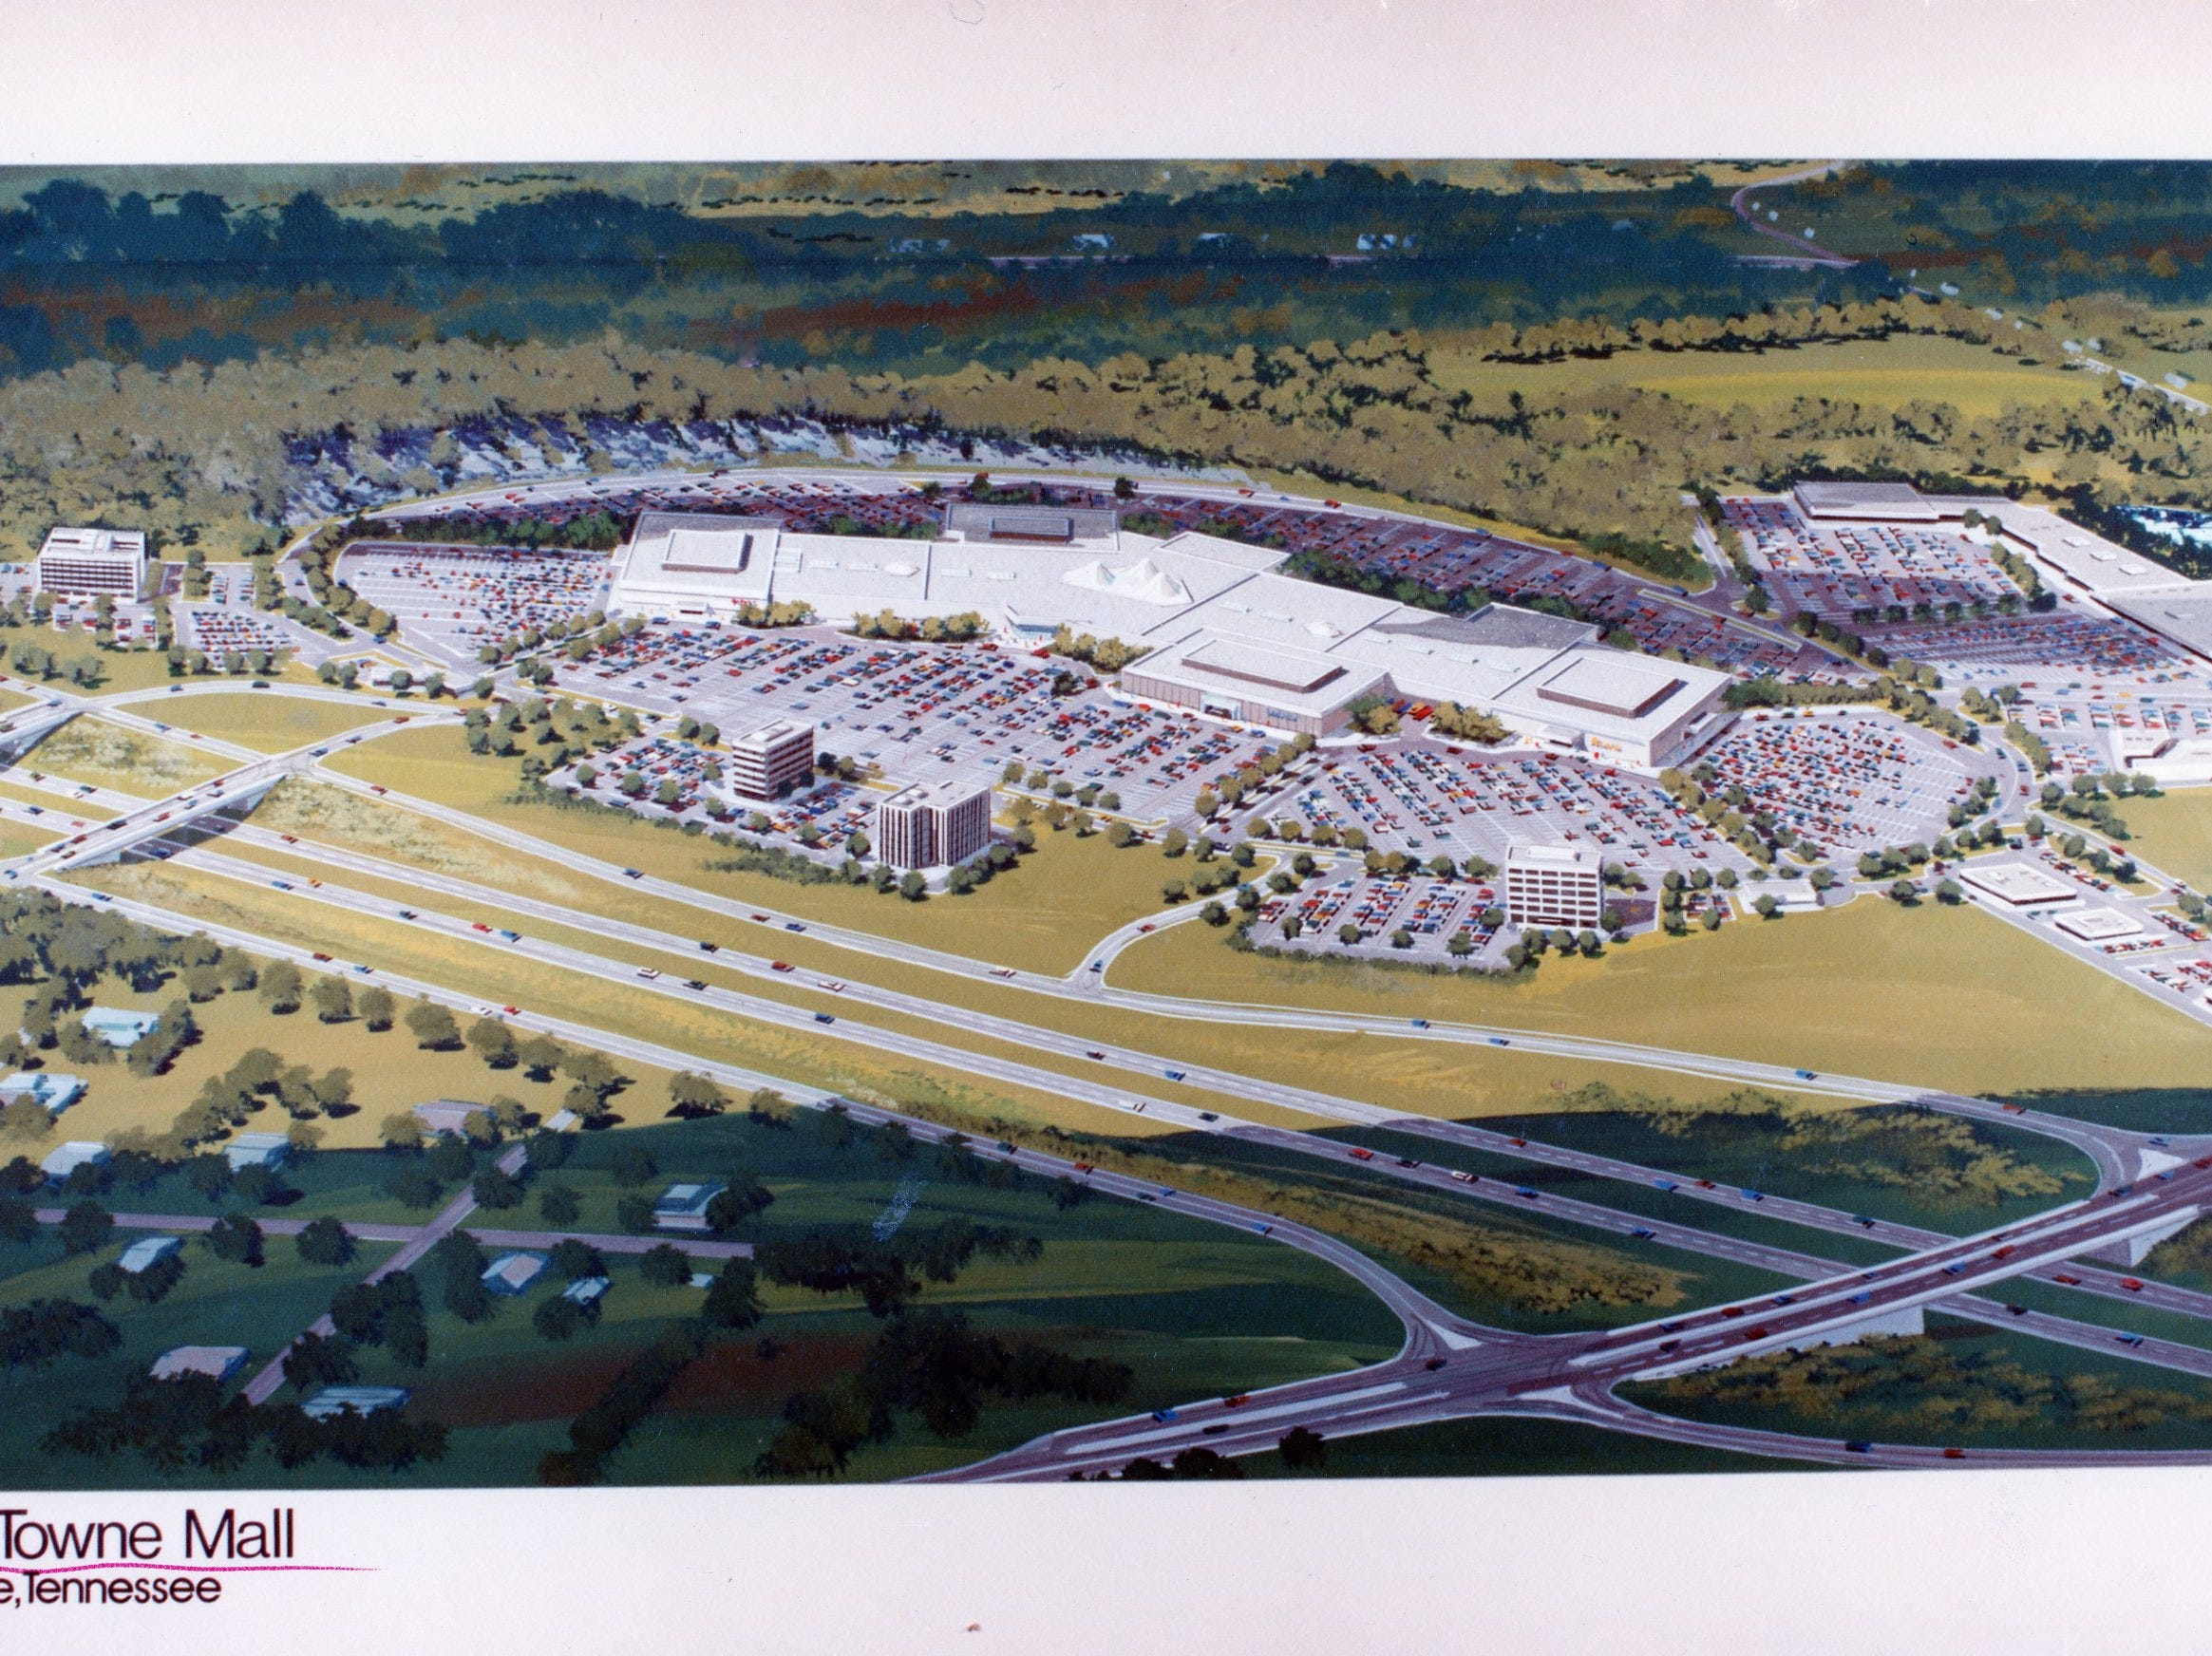 A rendering of the proposed East Towne Mall, November, 1982.